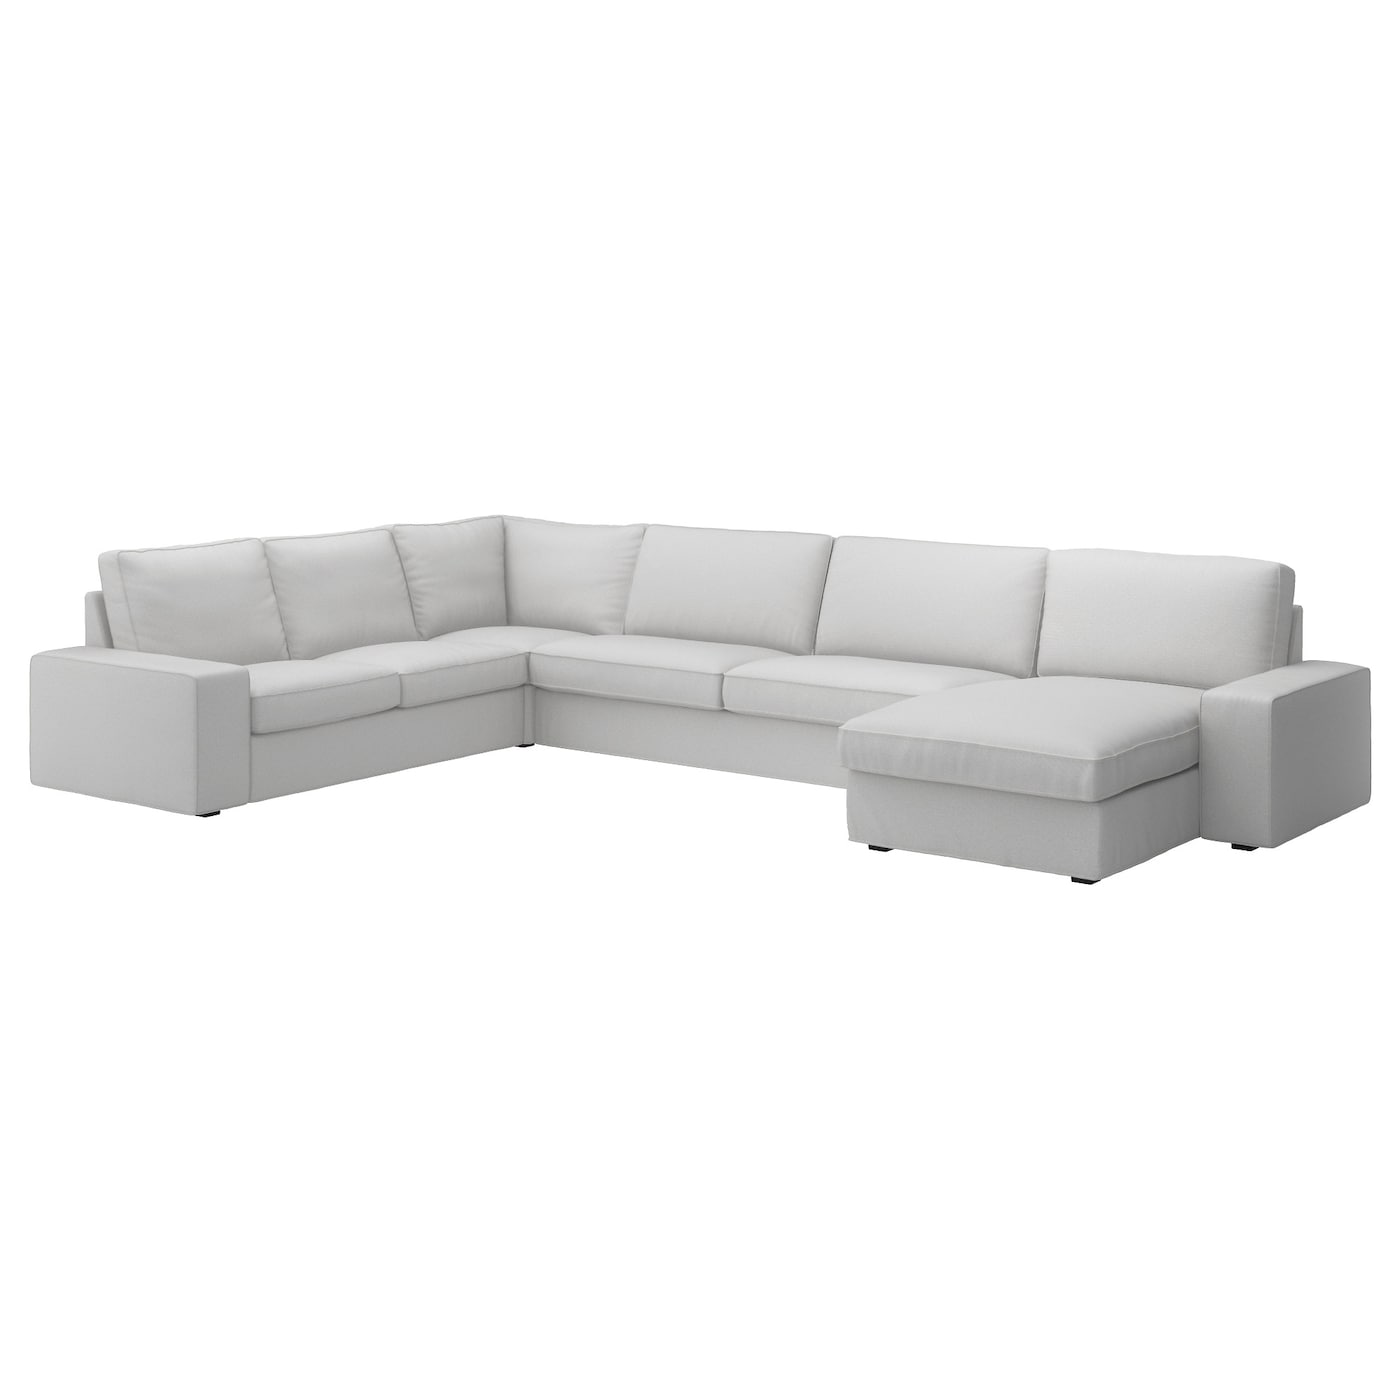 Kivik corner sofa 6 seat with chaise longue ramna light for Chaise longue sofa